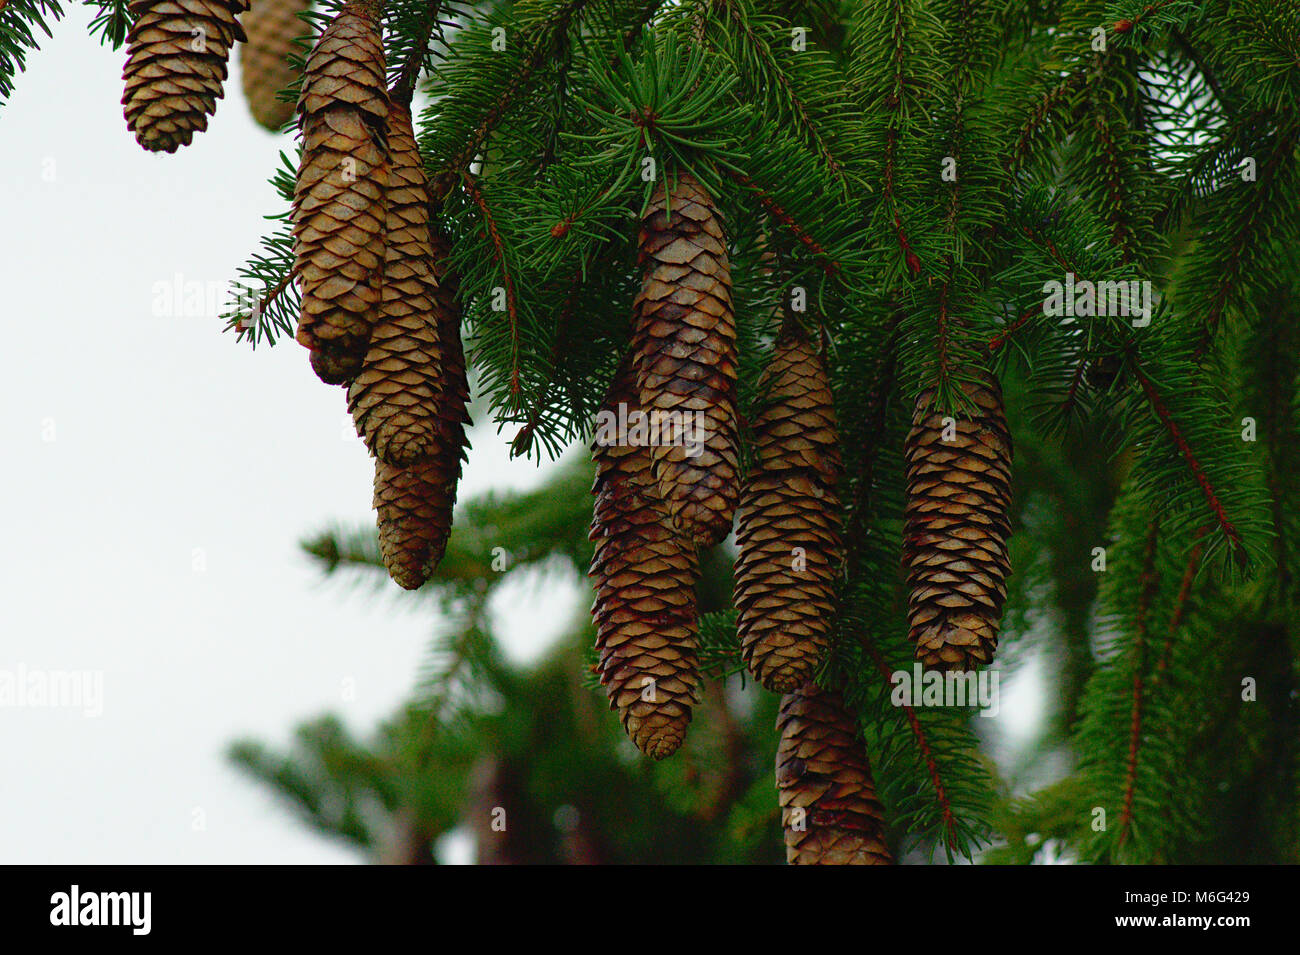 Norway Spruce cone - Stock Image